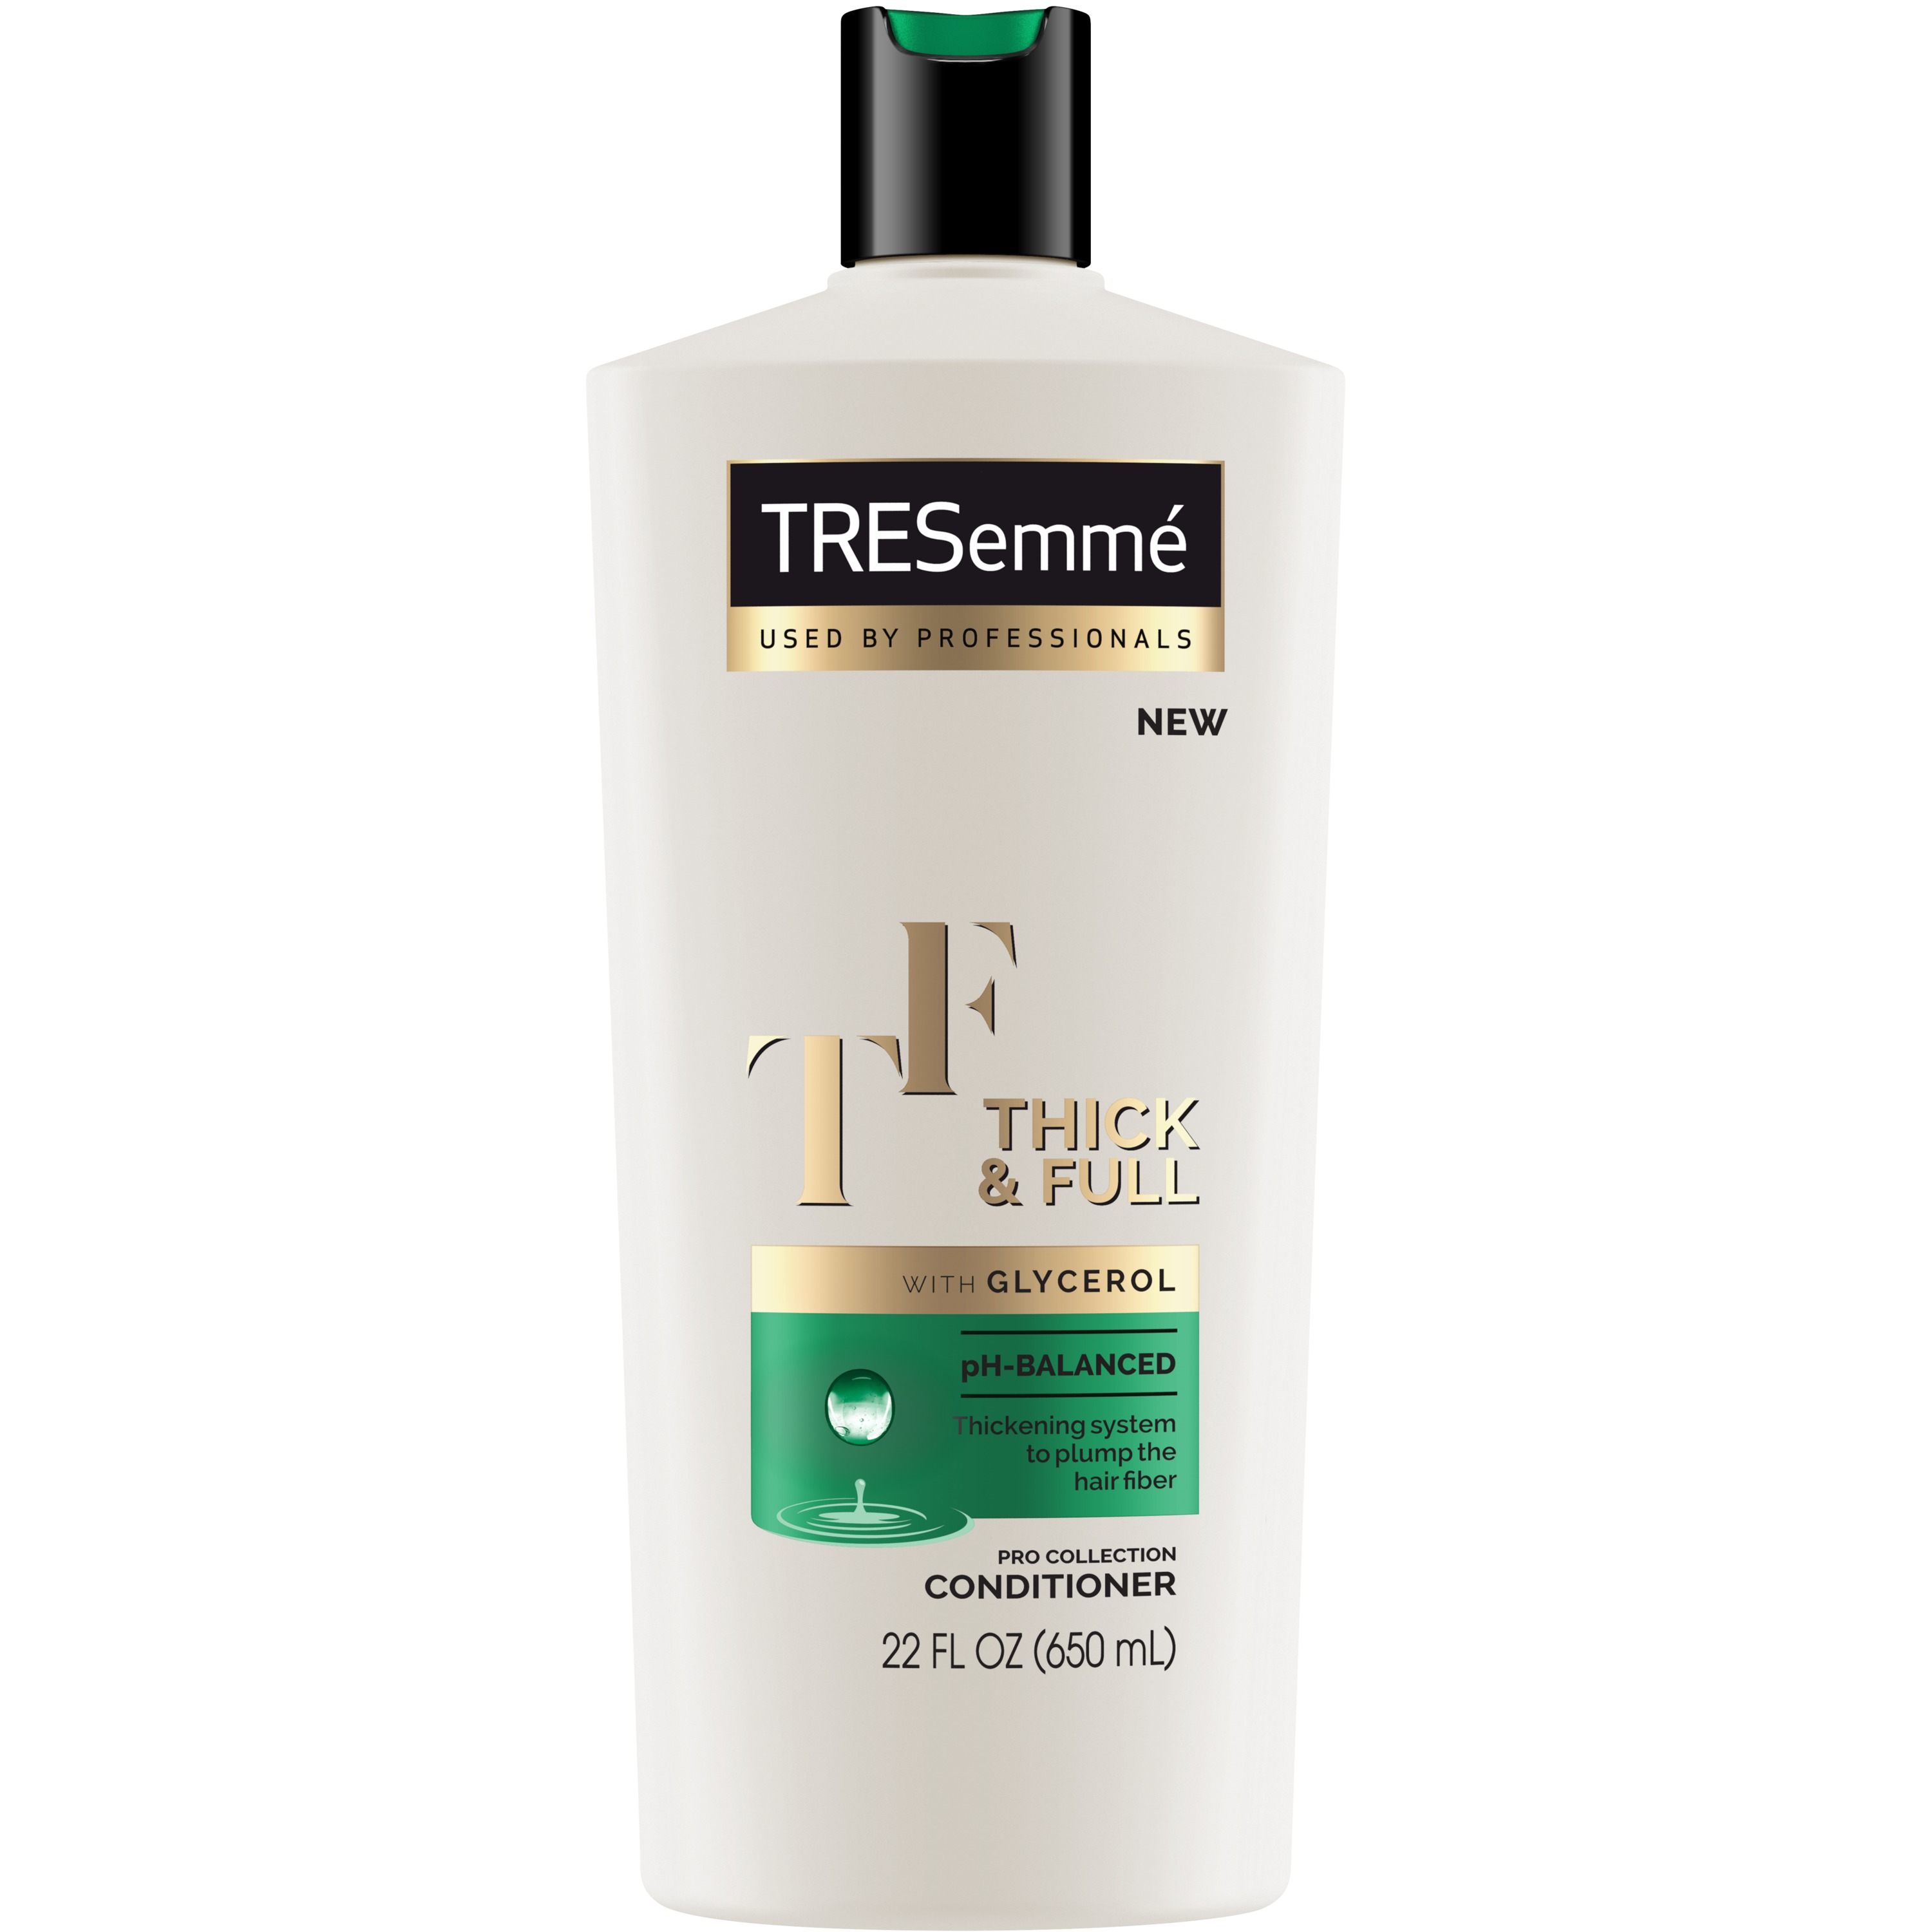 TRESemme Pro Collection Conditioner Thick & Full 22 oz